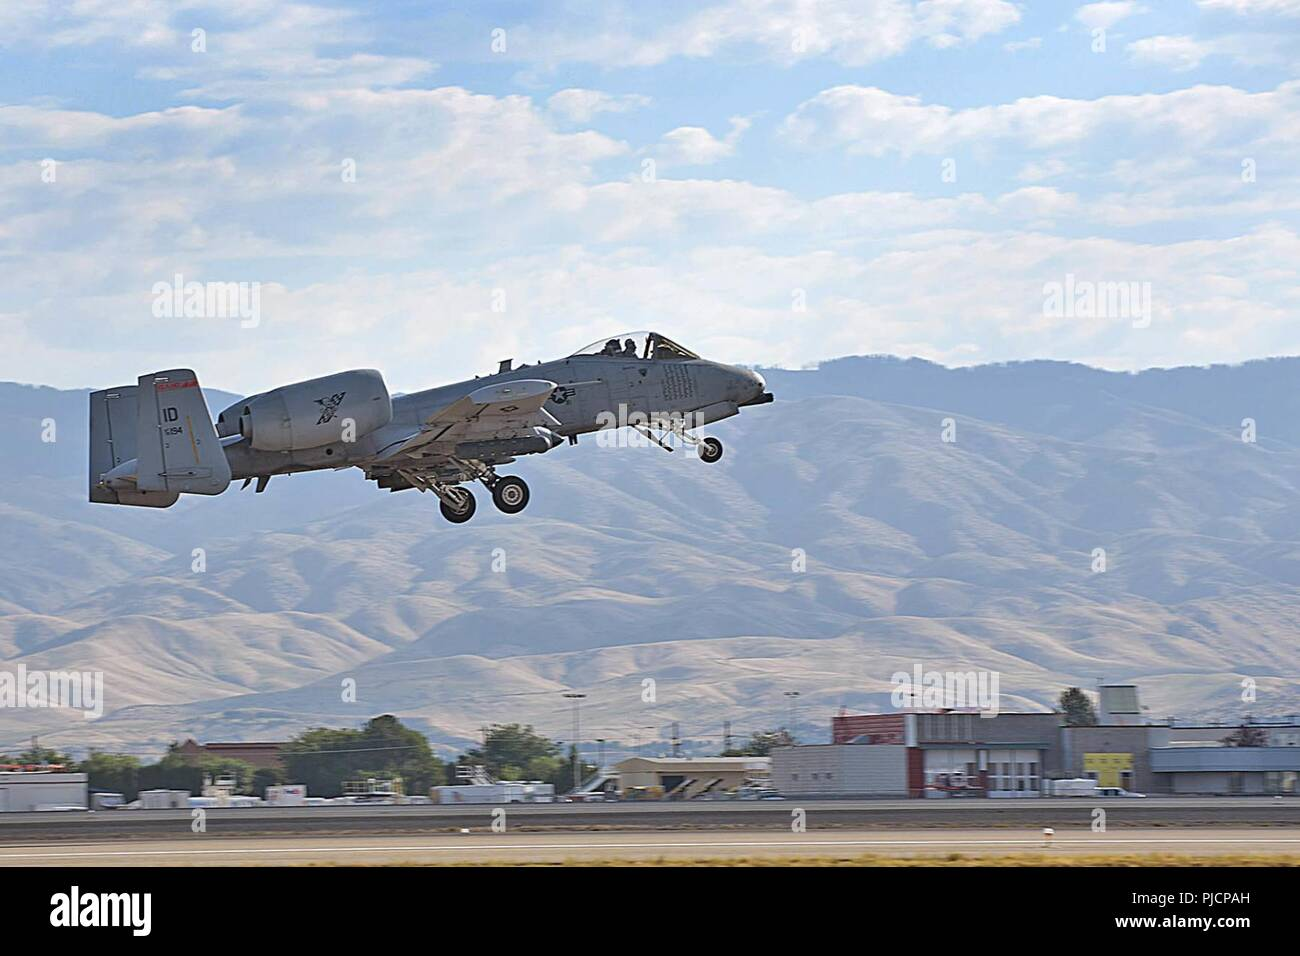 A 124th Fighter Wing, Idaho Air National Guard A-10 Thunderbolt II